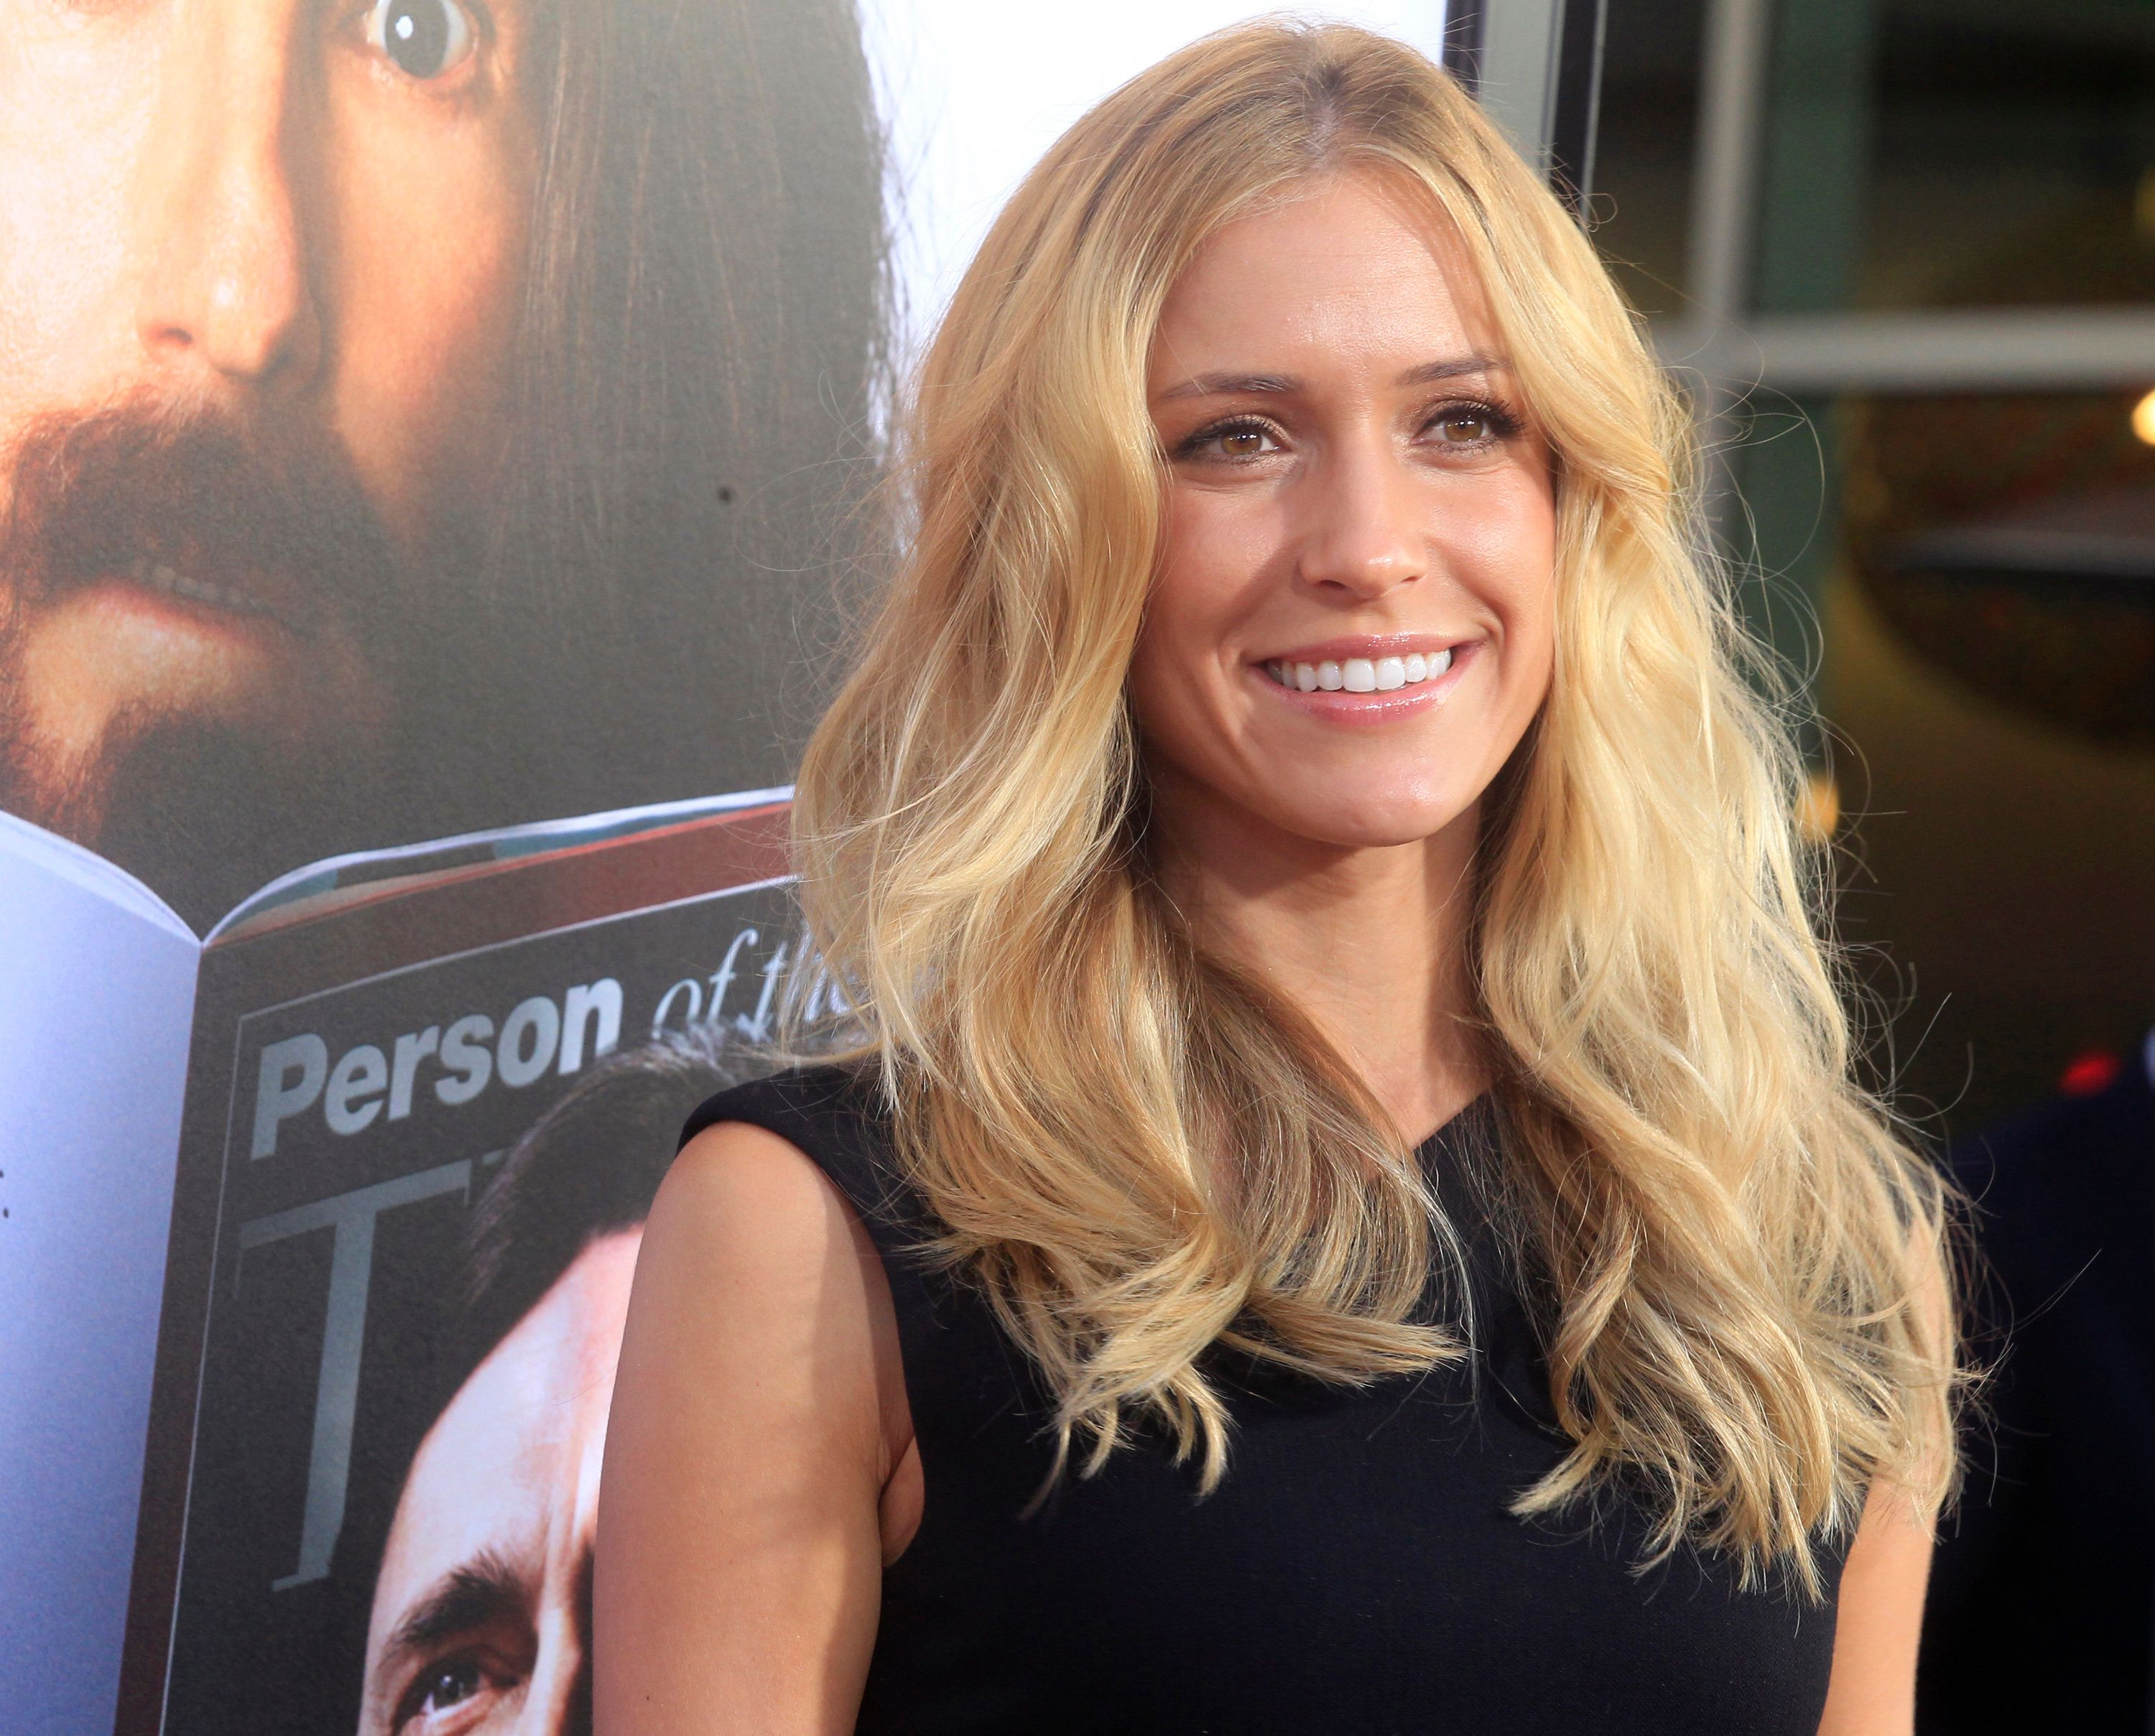 "Actress Kristin Cavallari arrives as a guest for the HBO Films presentation ""Clear History"" premiere in Hollywood July 31, 2013.  REUTERS/Fred Prouser (UNITED STATES - Tags: ENTERTAINMENT)"